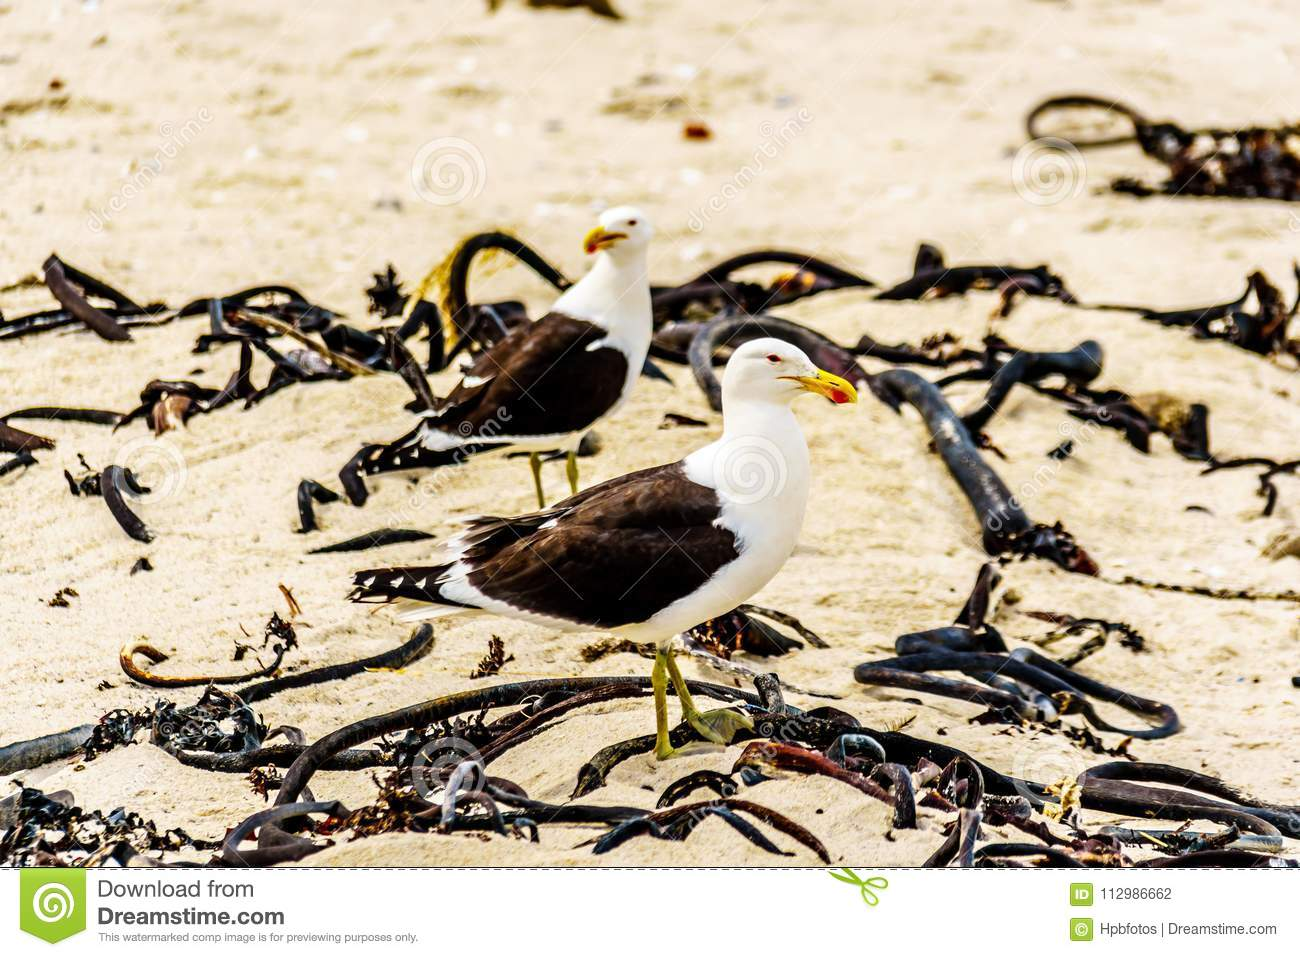 Seagulls at Strandfontein beach on Baden Powell Drive between Macassar and Muizenberg near Cape Town